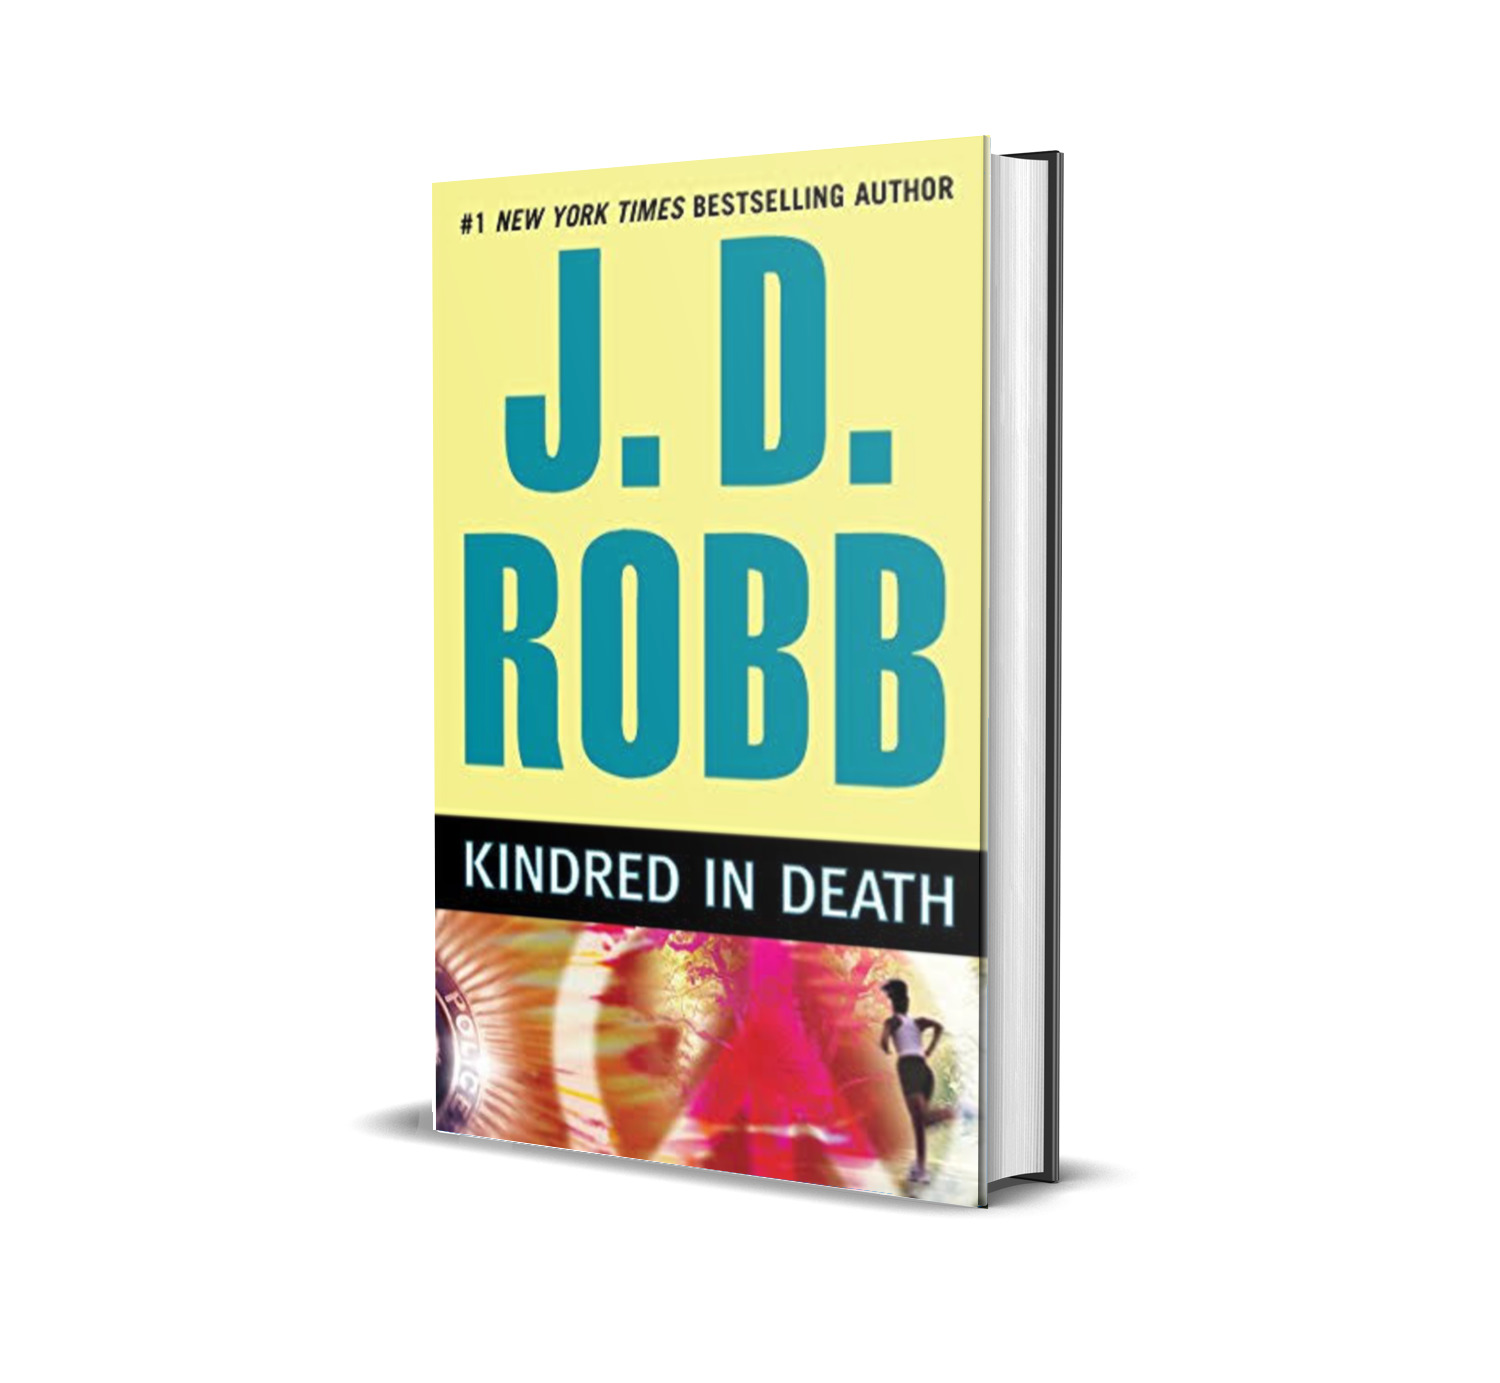 KINDRED IN DEATH NORA ROBERTS, J. D ROBB